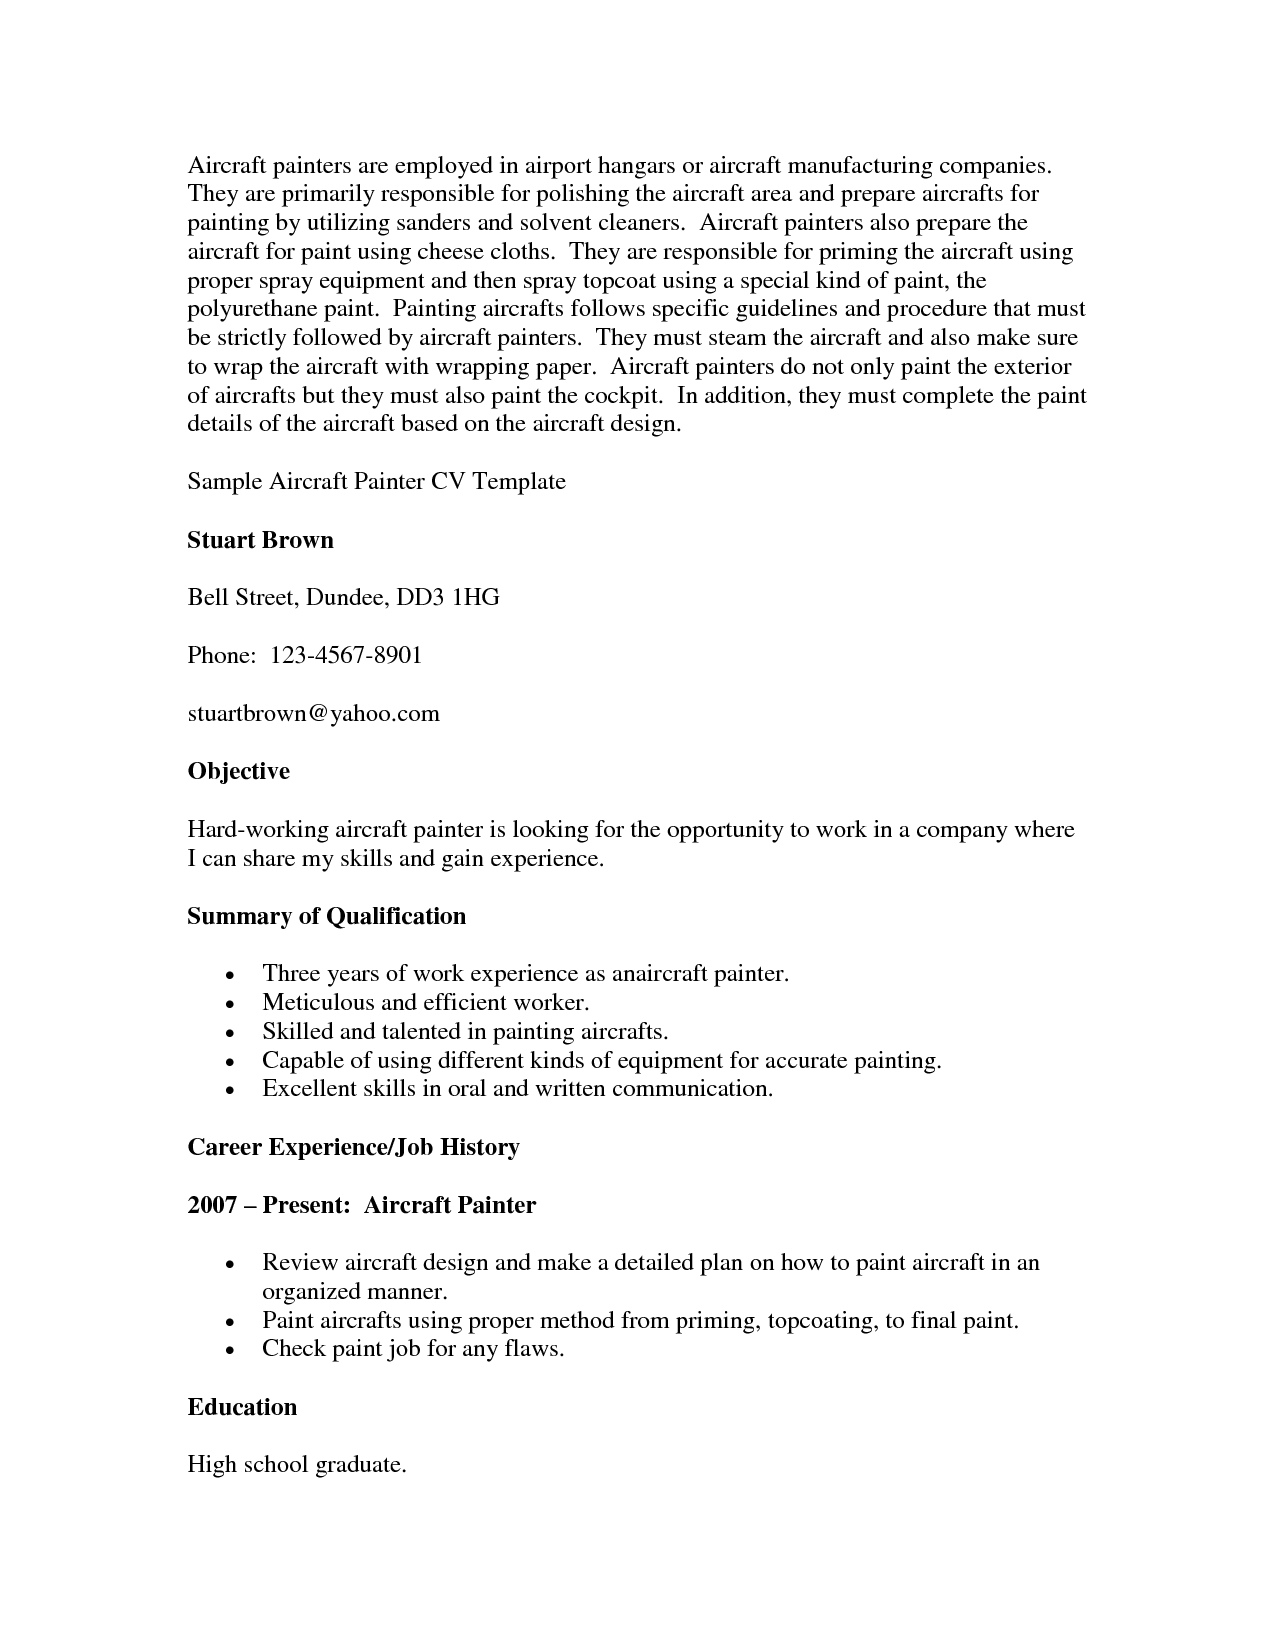 Wellness Coordinator Resume Example Free Templates